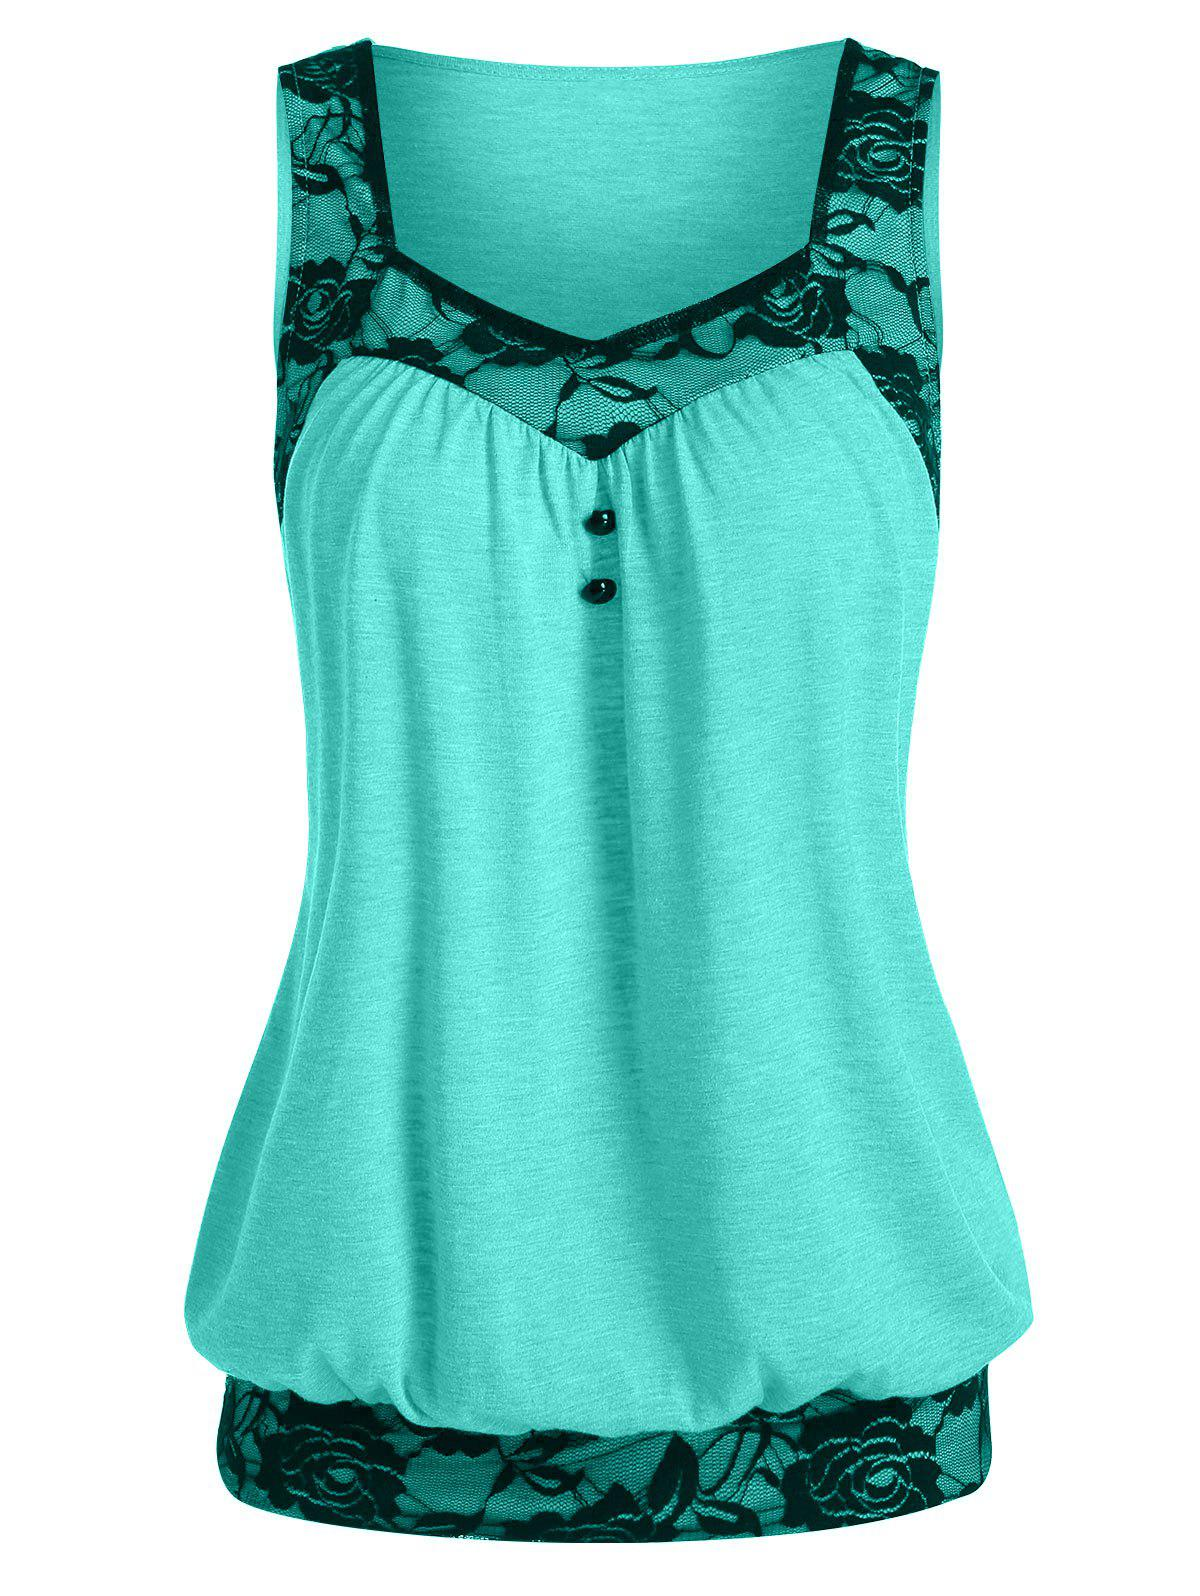 Lace Insert Mock Button Blouson Tank Top - AQUAMARINE L